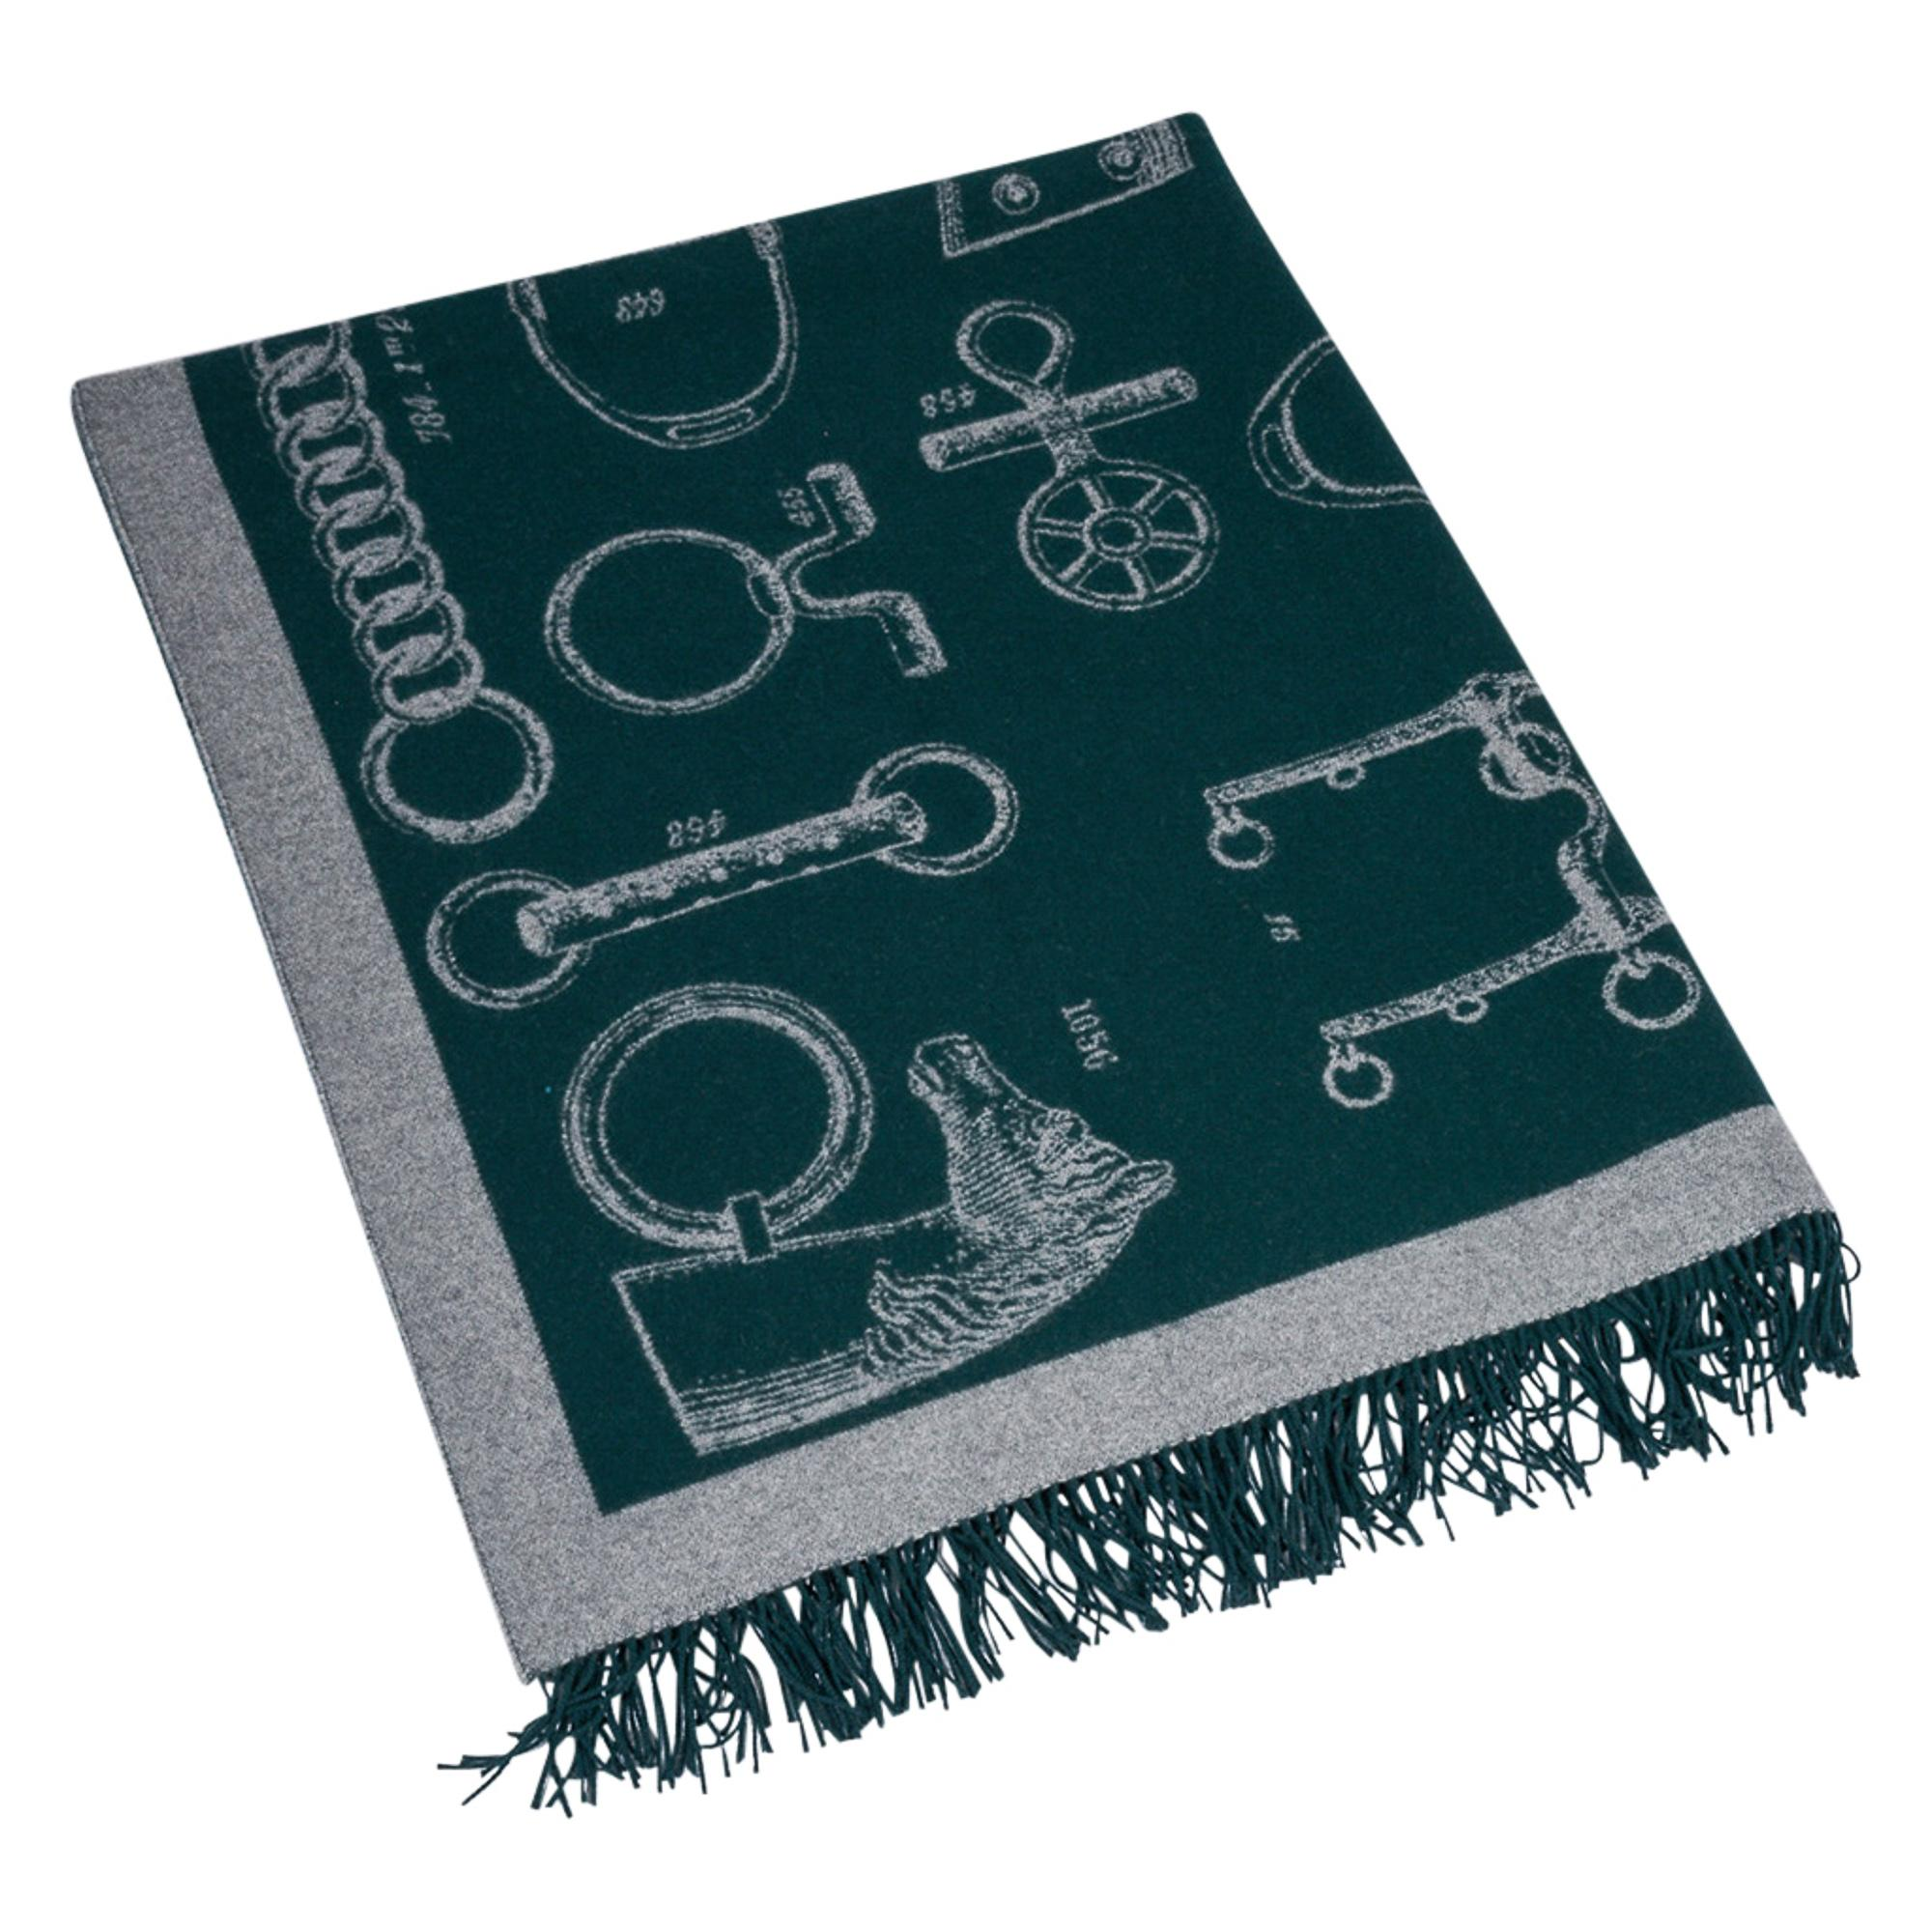 Hermes Blanket Metalliers Equestrian Throw Vert Fonce Limited Edition New